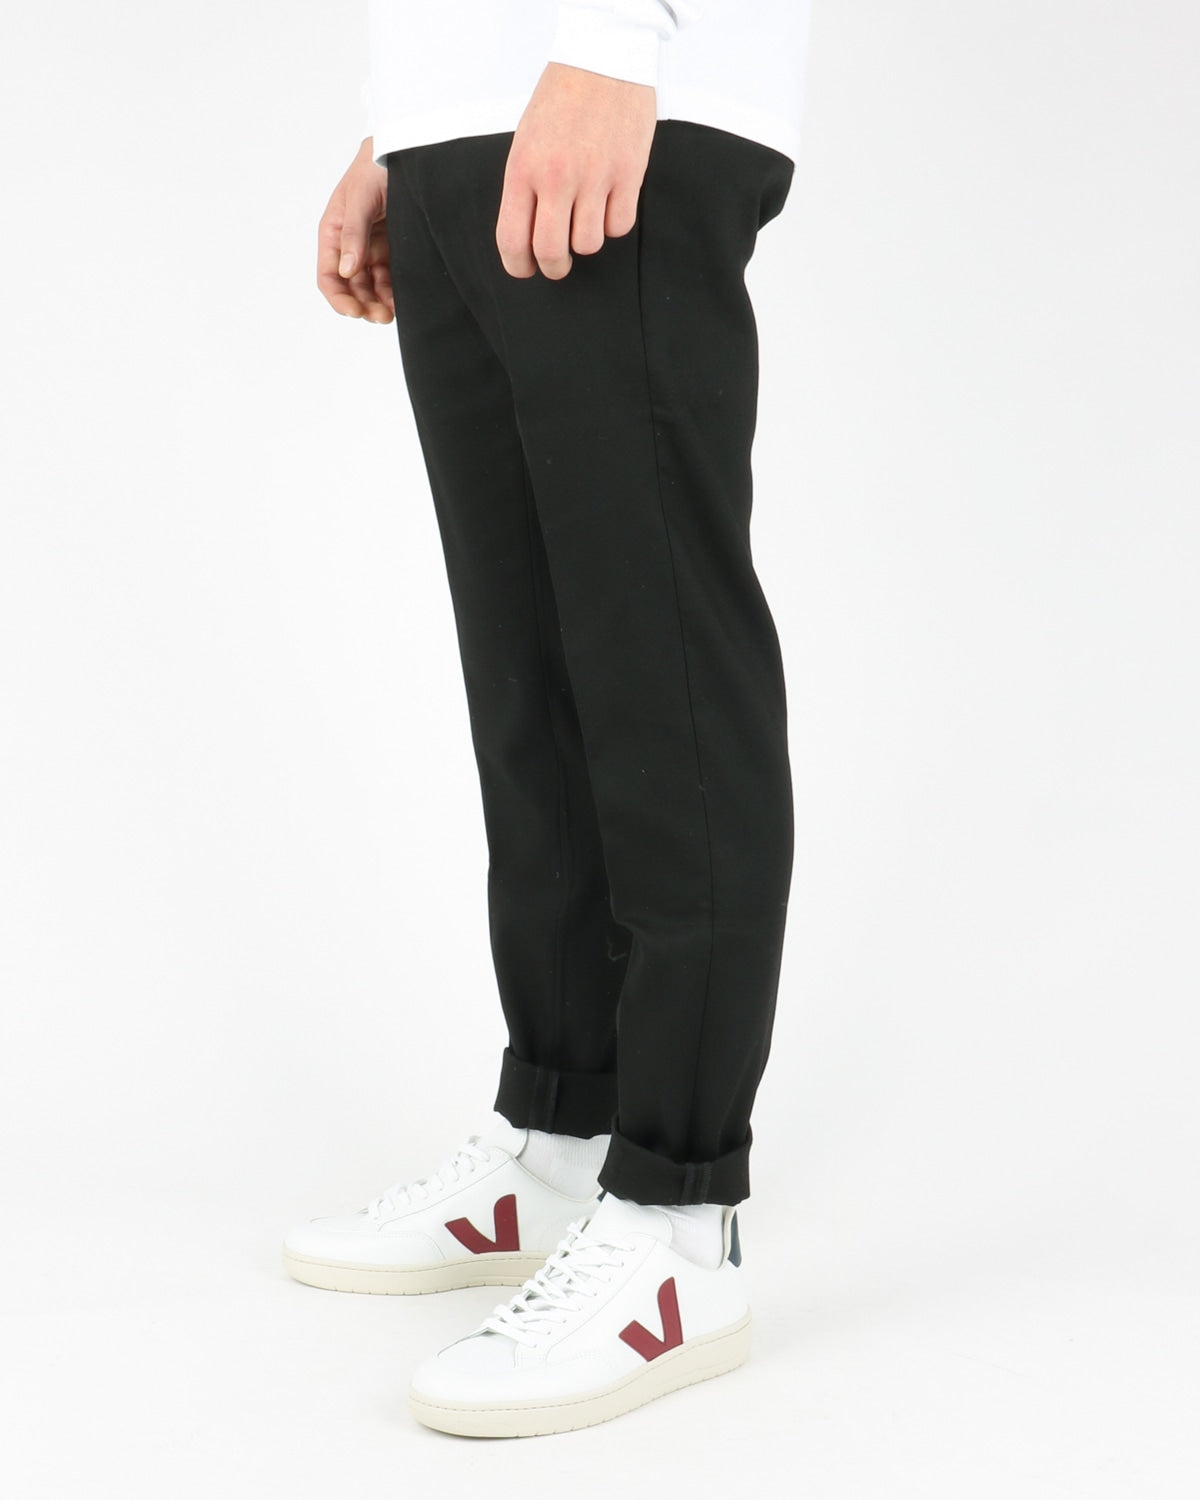 libertine libertine_transworld pants_black_2_3